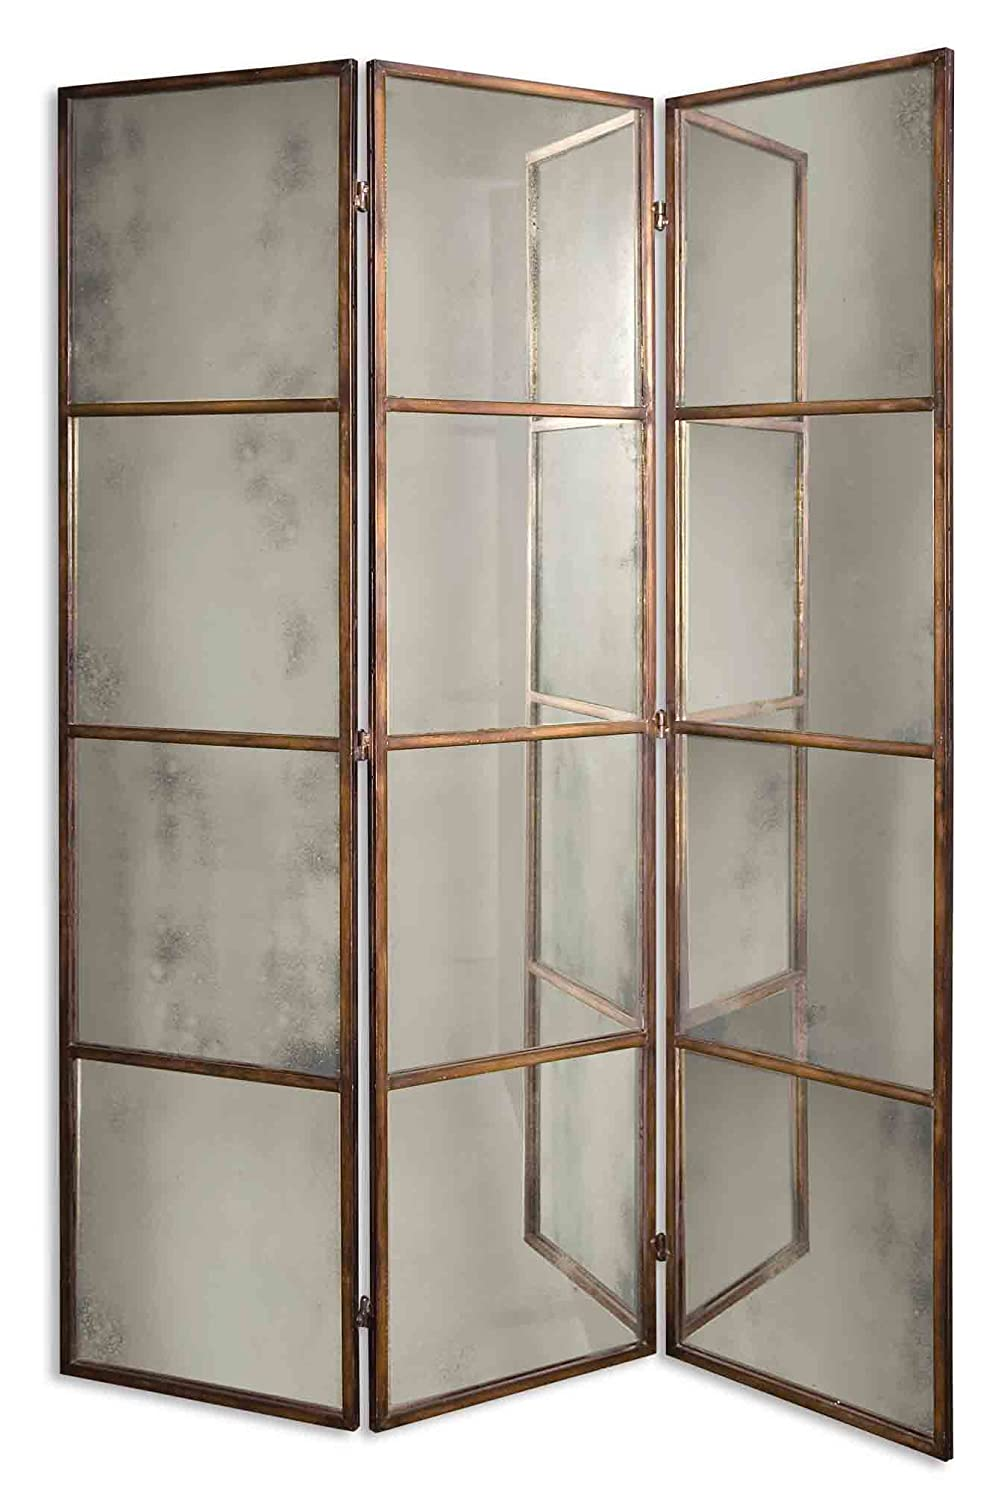 mirrored room divider